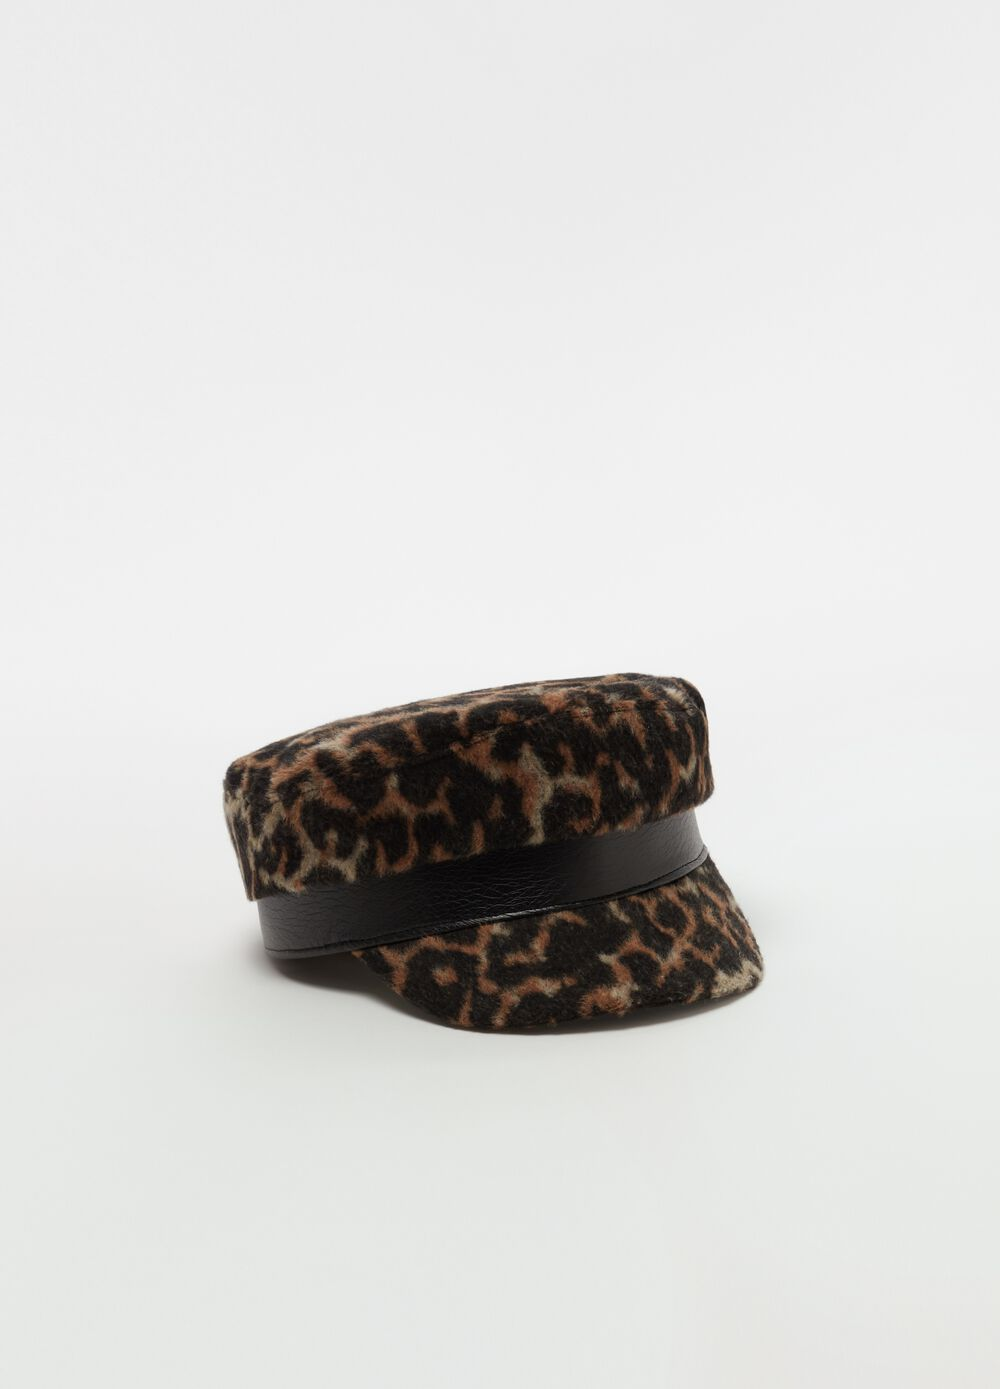 Baker boy hat with animal print